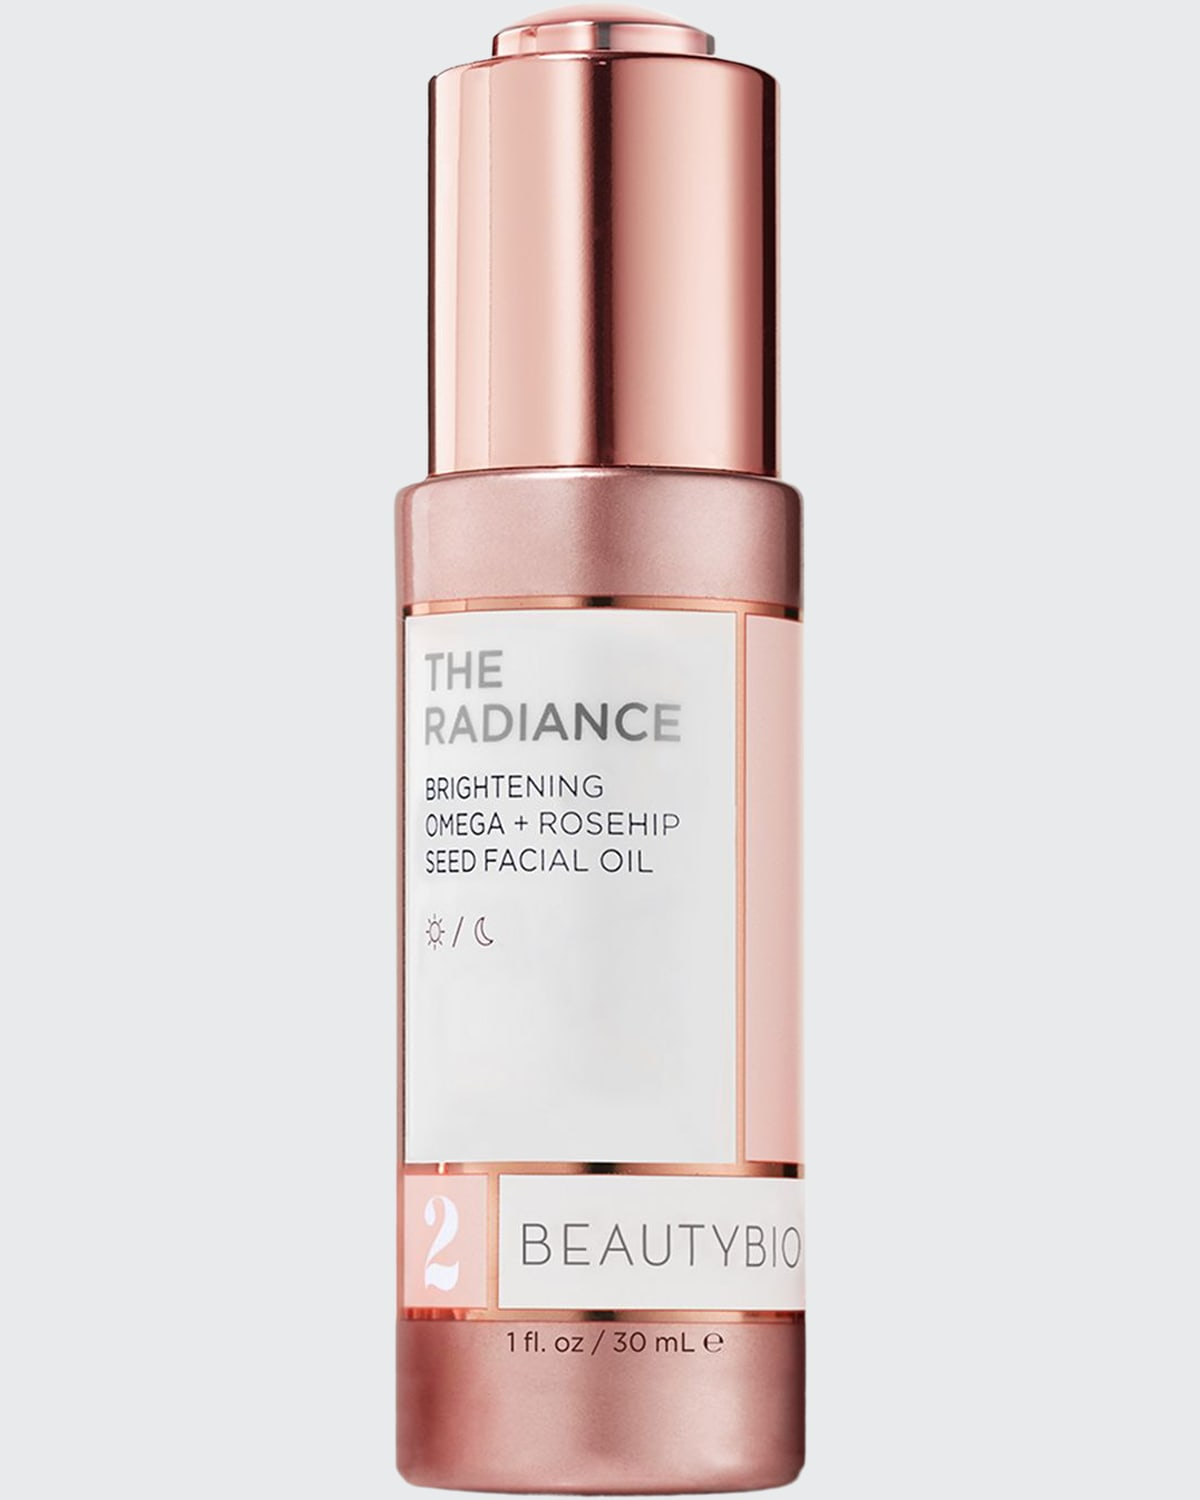 1 oz. The Radiance Brightening Vitamin E + Rosehip Seed Facial Oil